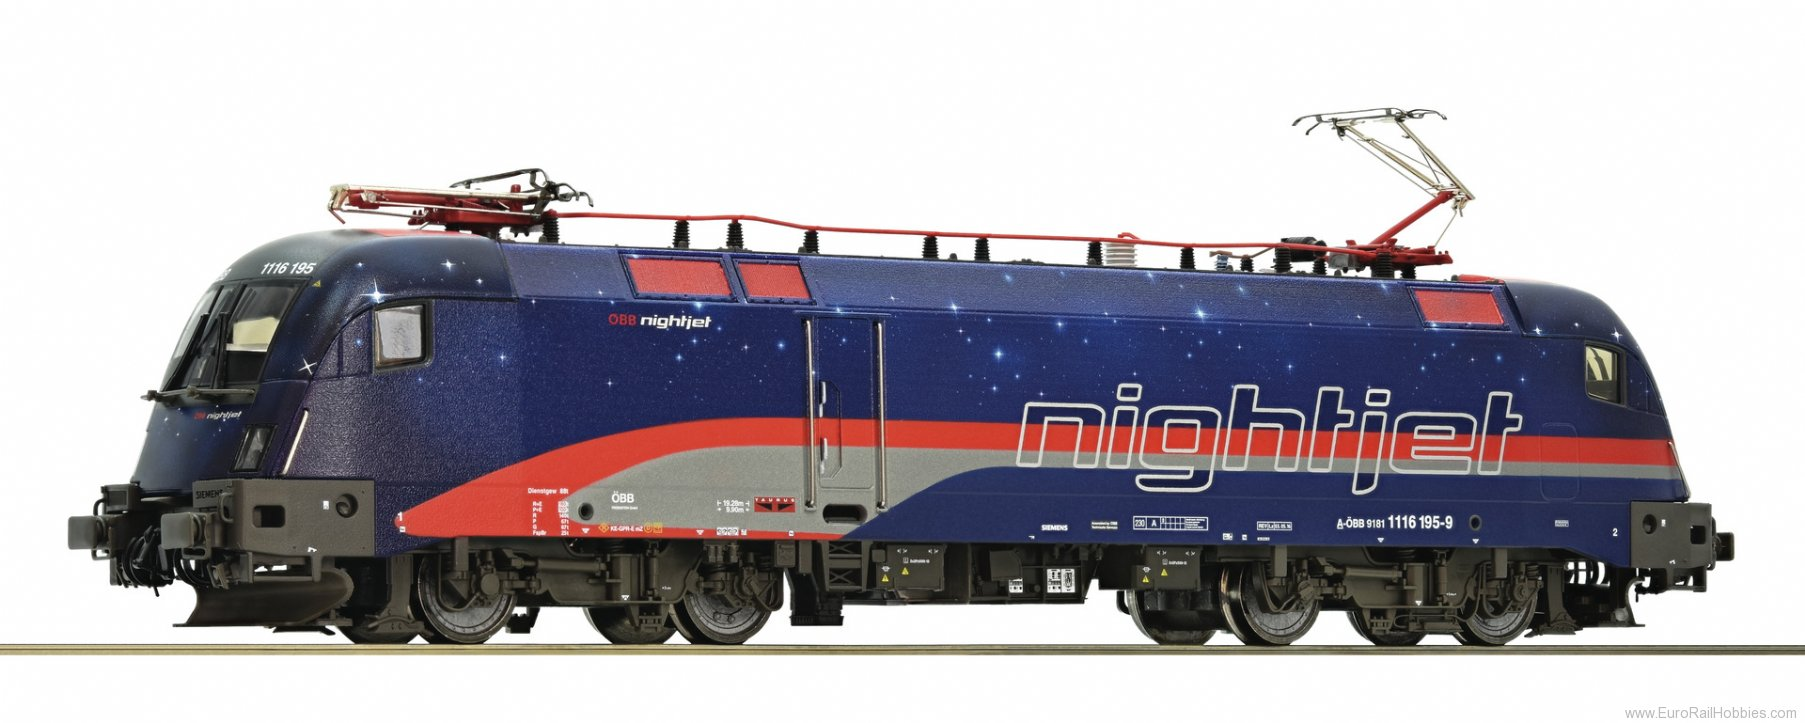 Roco 79242 Electric locomotive 1116 195, OBB (AC Digital